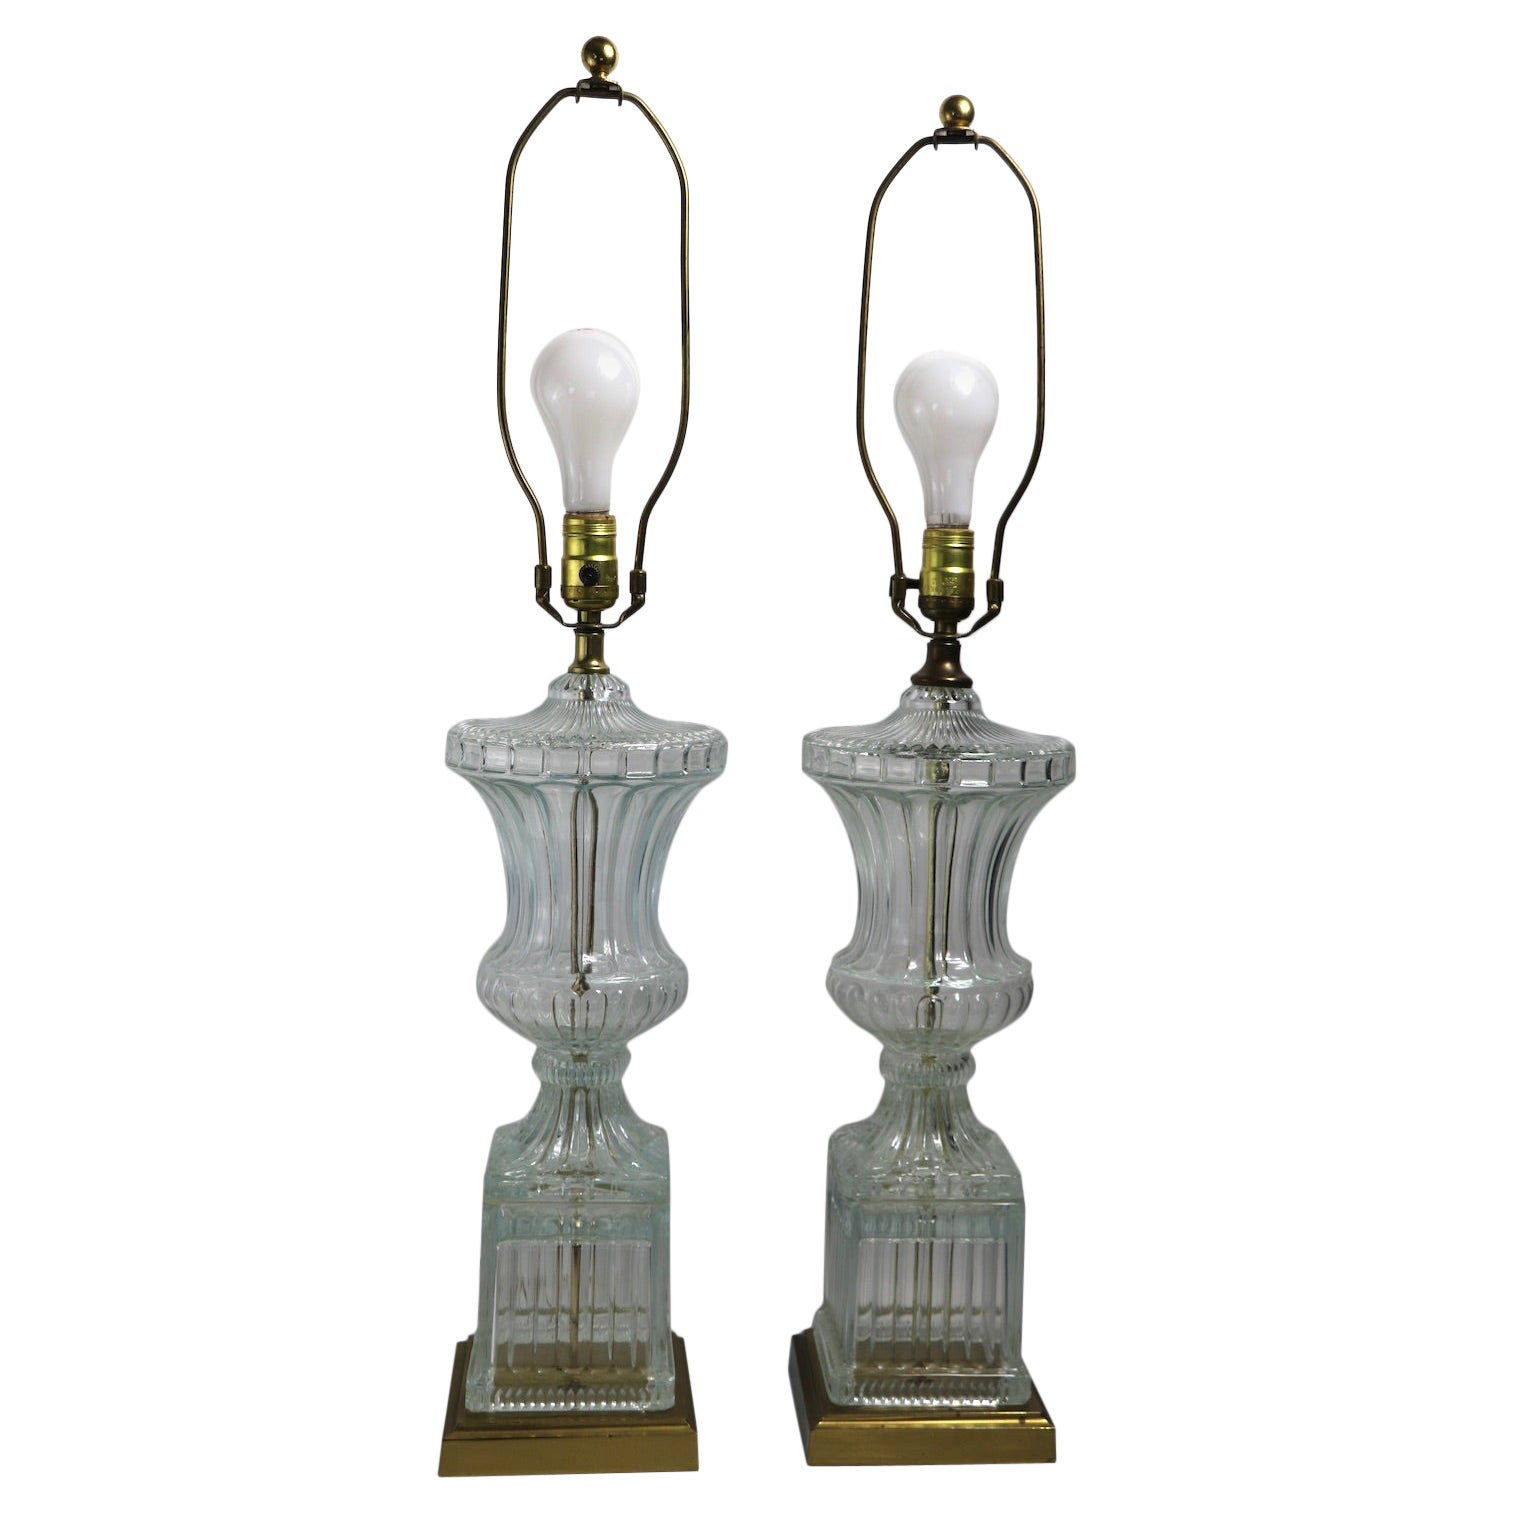 Pair of Glass Urn Form Table Lamps by Paul Hanson